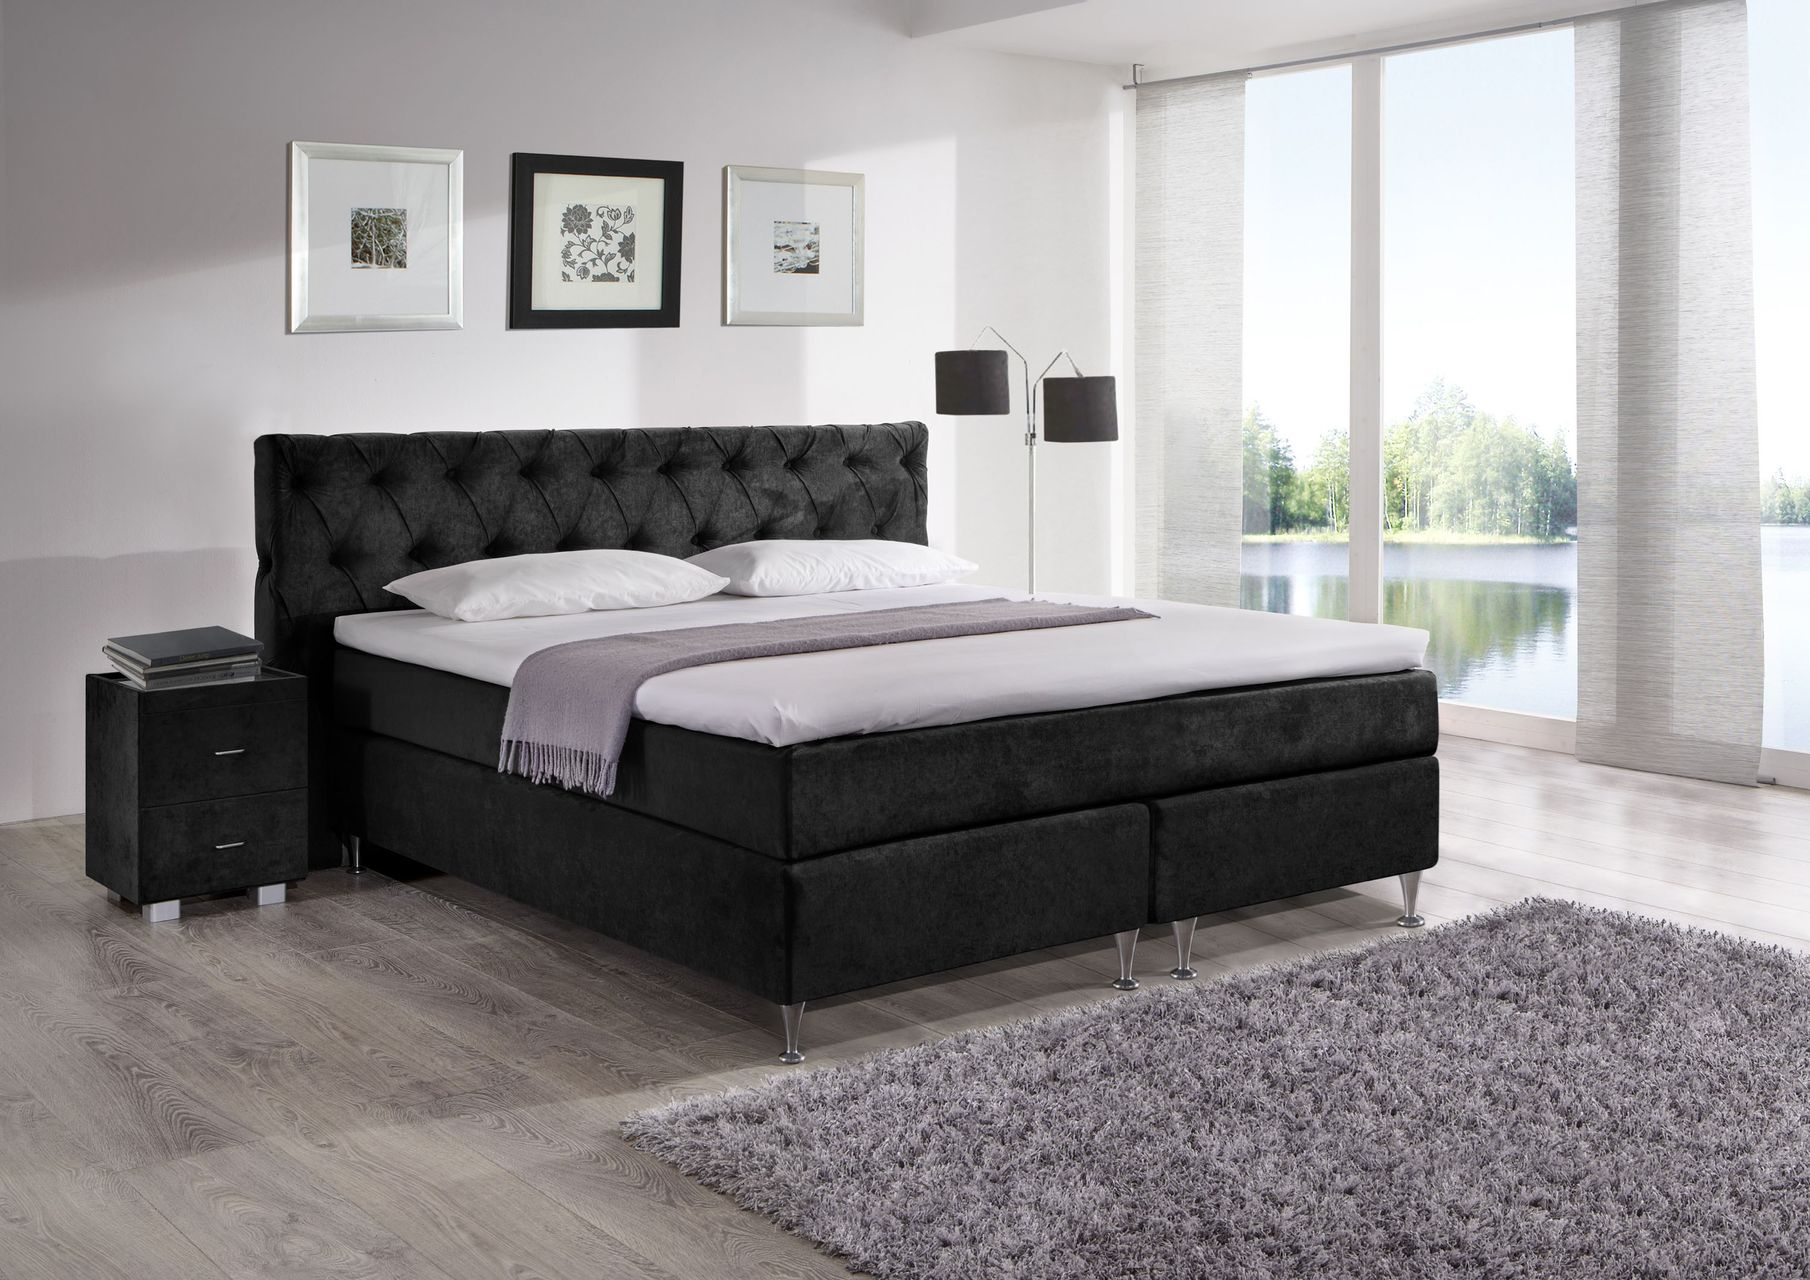 boxspringbett ohne matratze boxspringbett ohne matratze. Black Bedroom Furniture Sets. Home Design Ideas